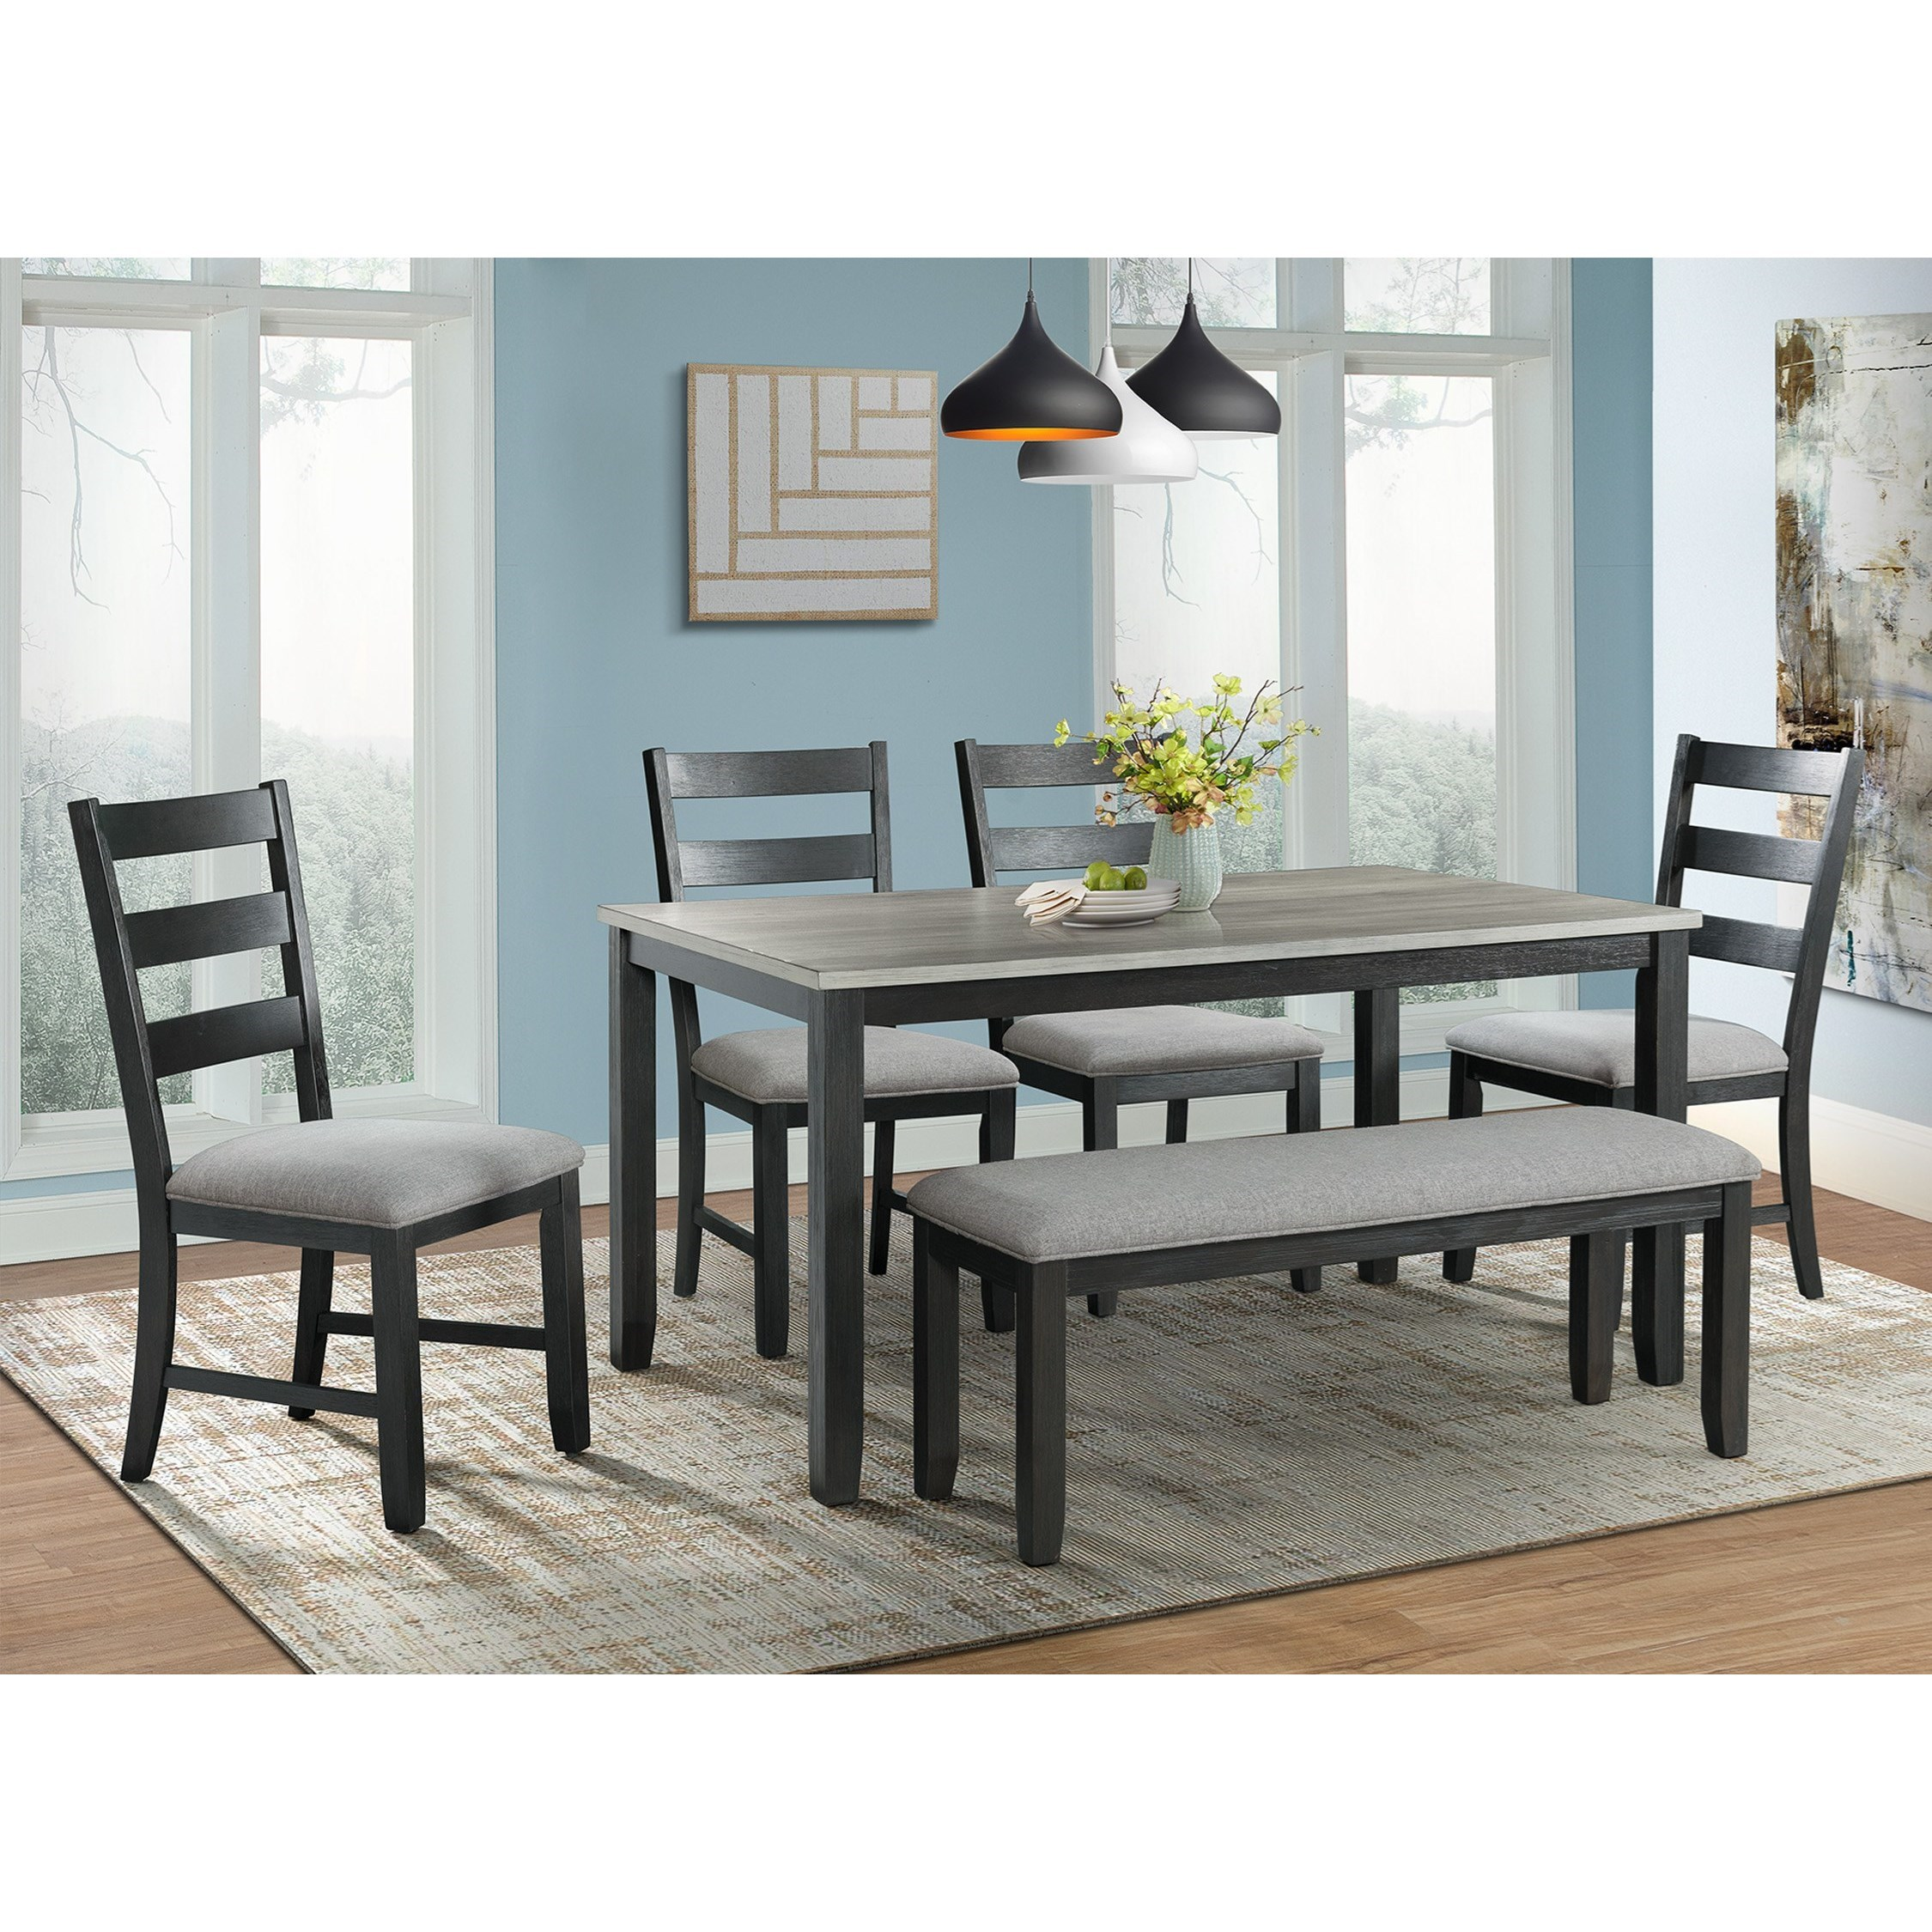 Martin Dining Table Set with Bench by Elements International at Johnny Janosik